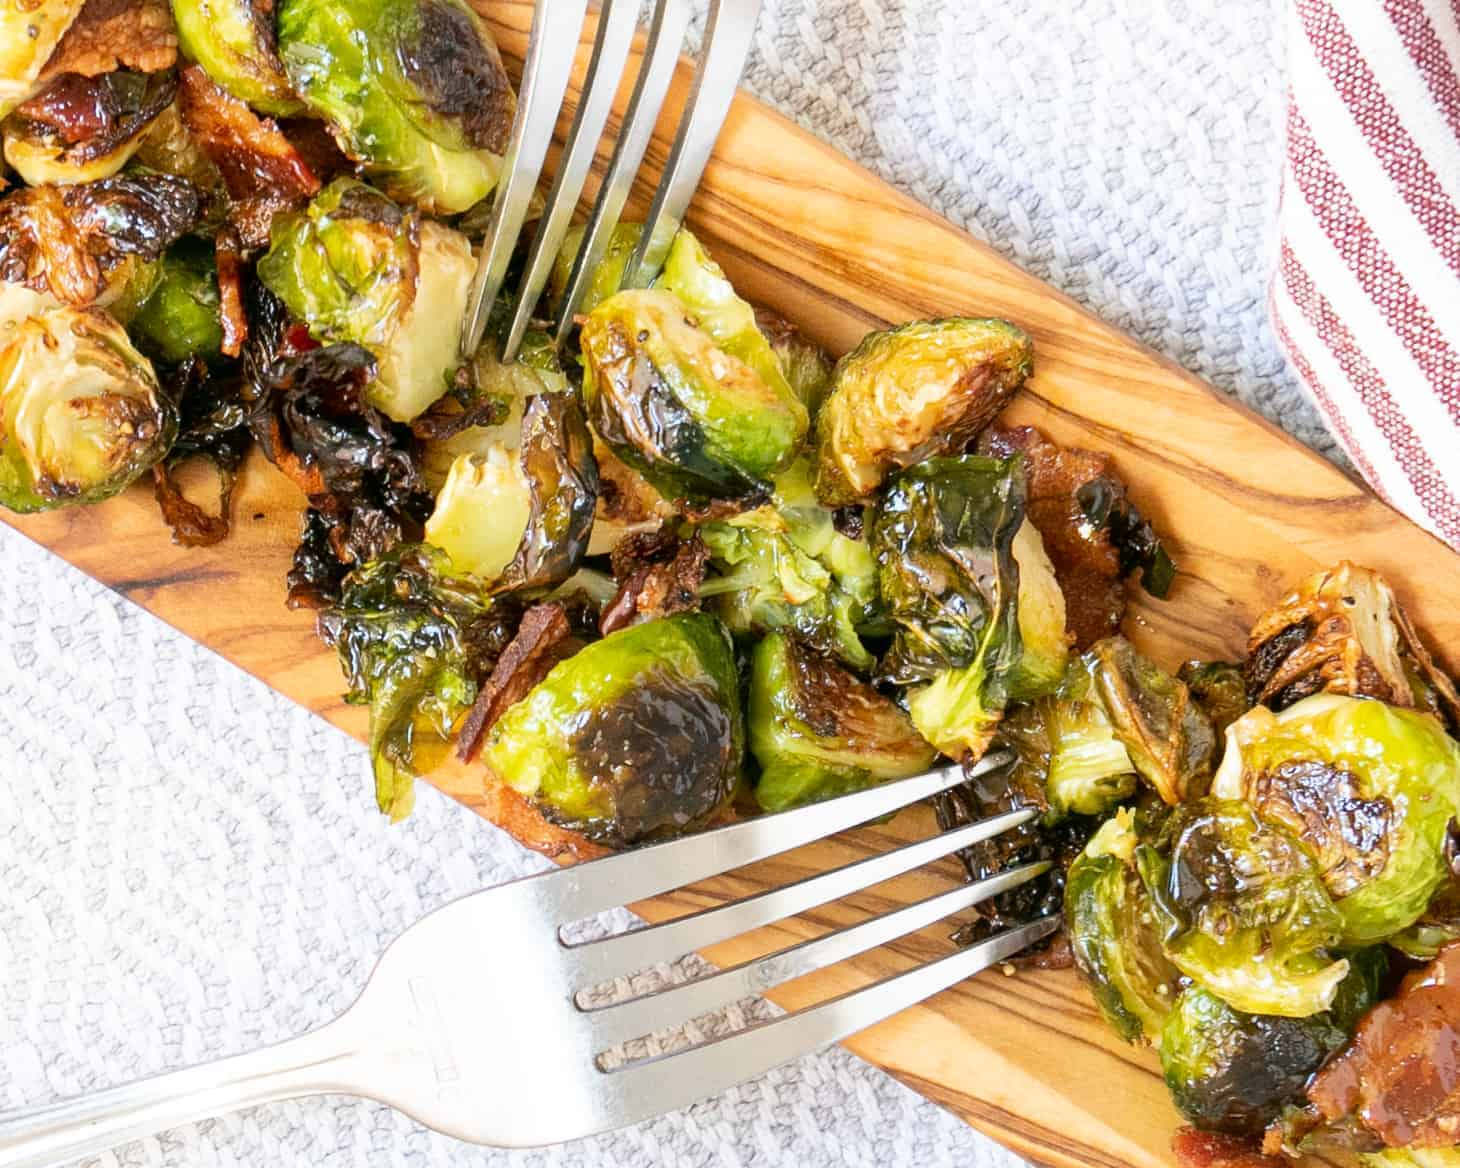 A plate of Maple Butter Brussels Sprouts with Bacon